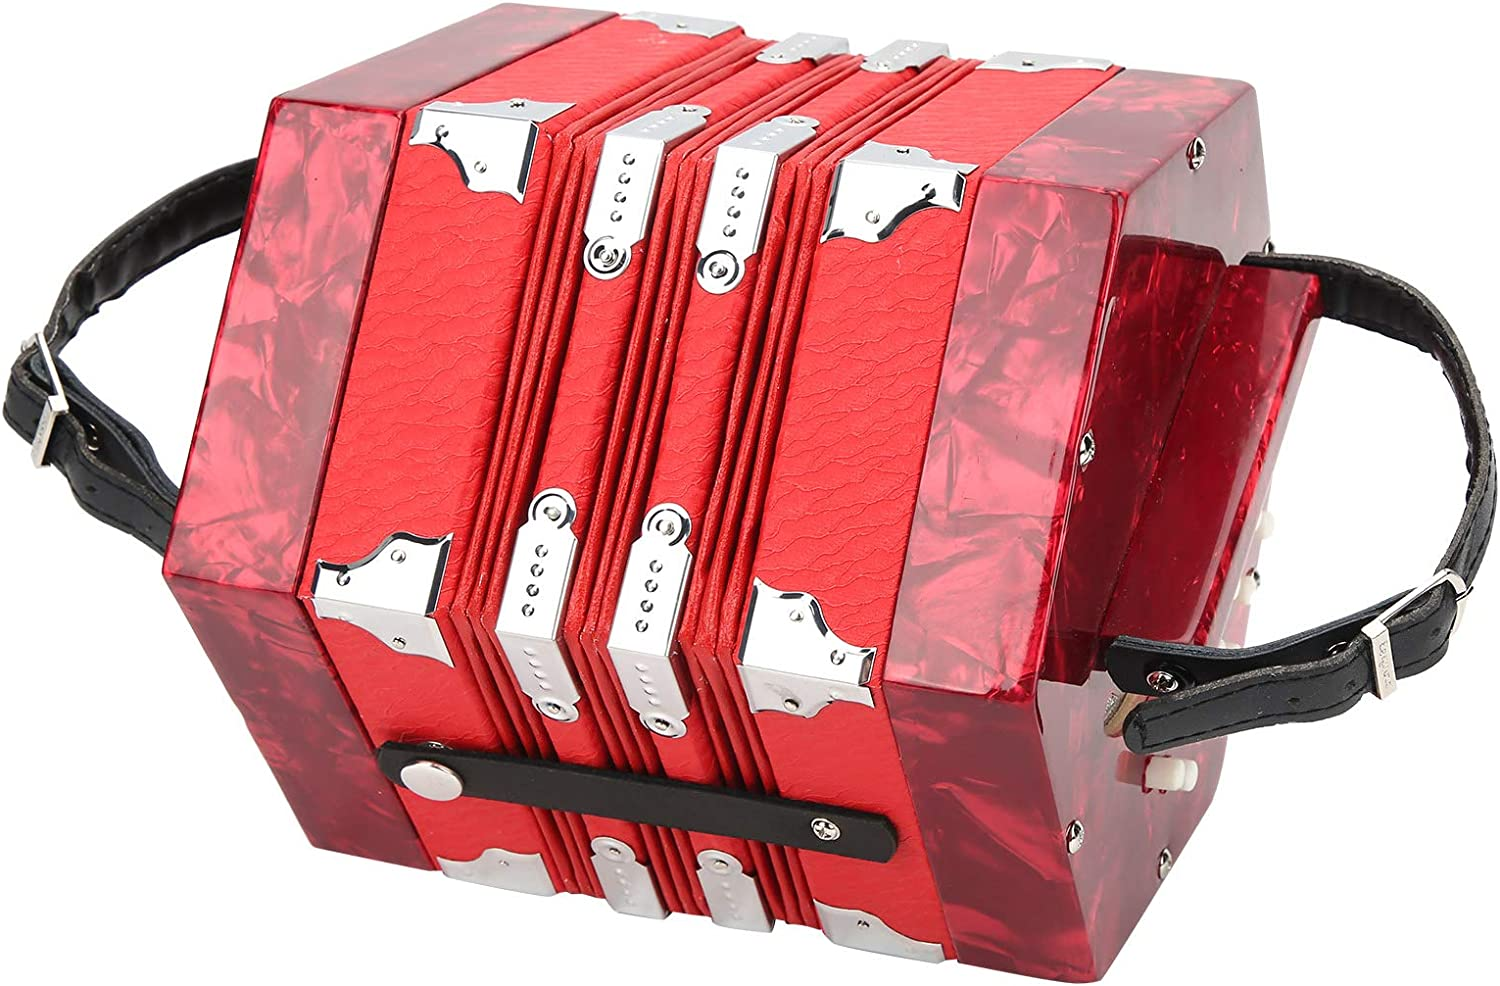 NEW Concertina Accordion Award-winning store Button Instrument Sol